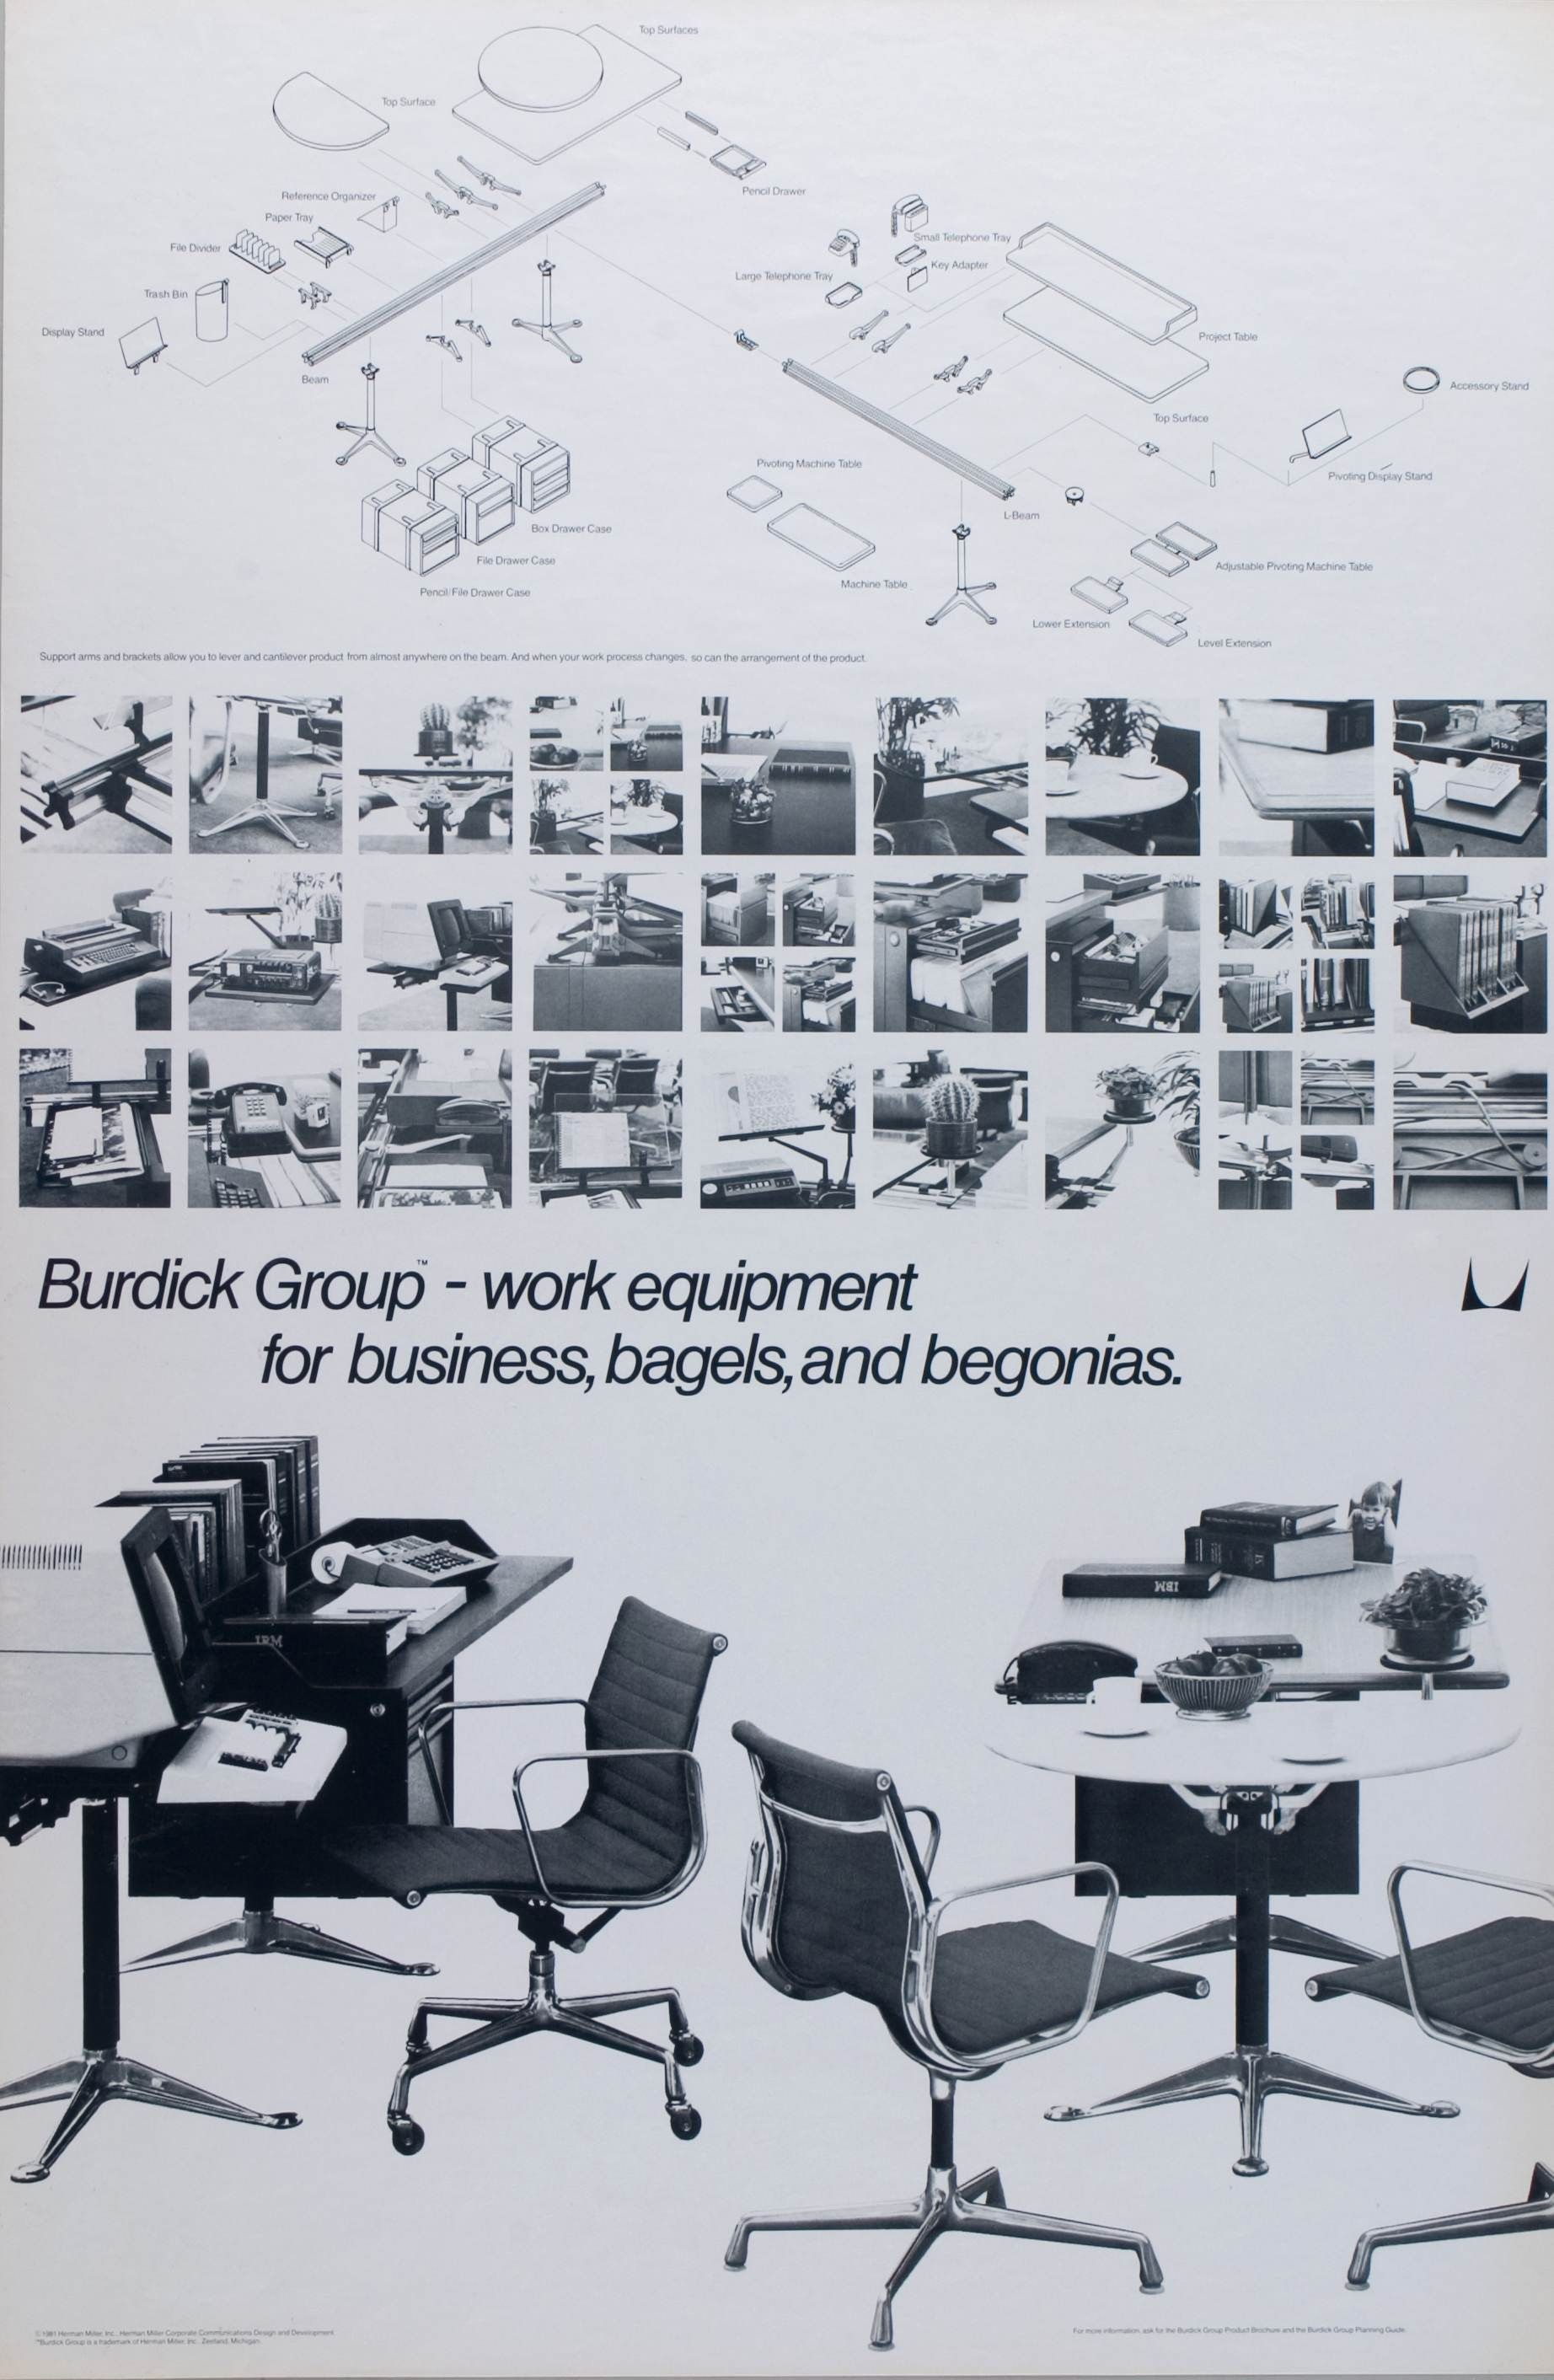 At Herman Miller, The Burdick Group desk system was often paired with Eames aluminum group chairs.